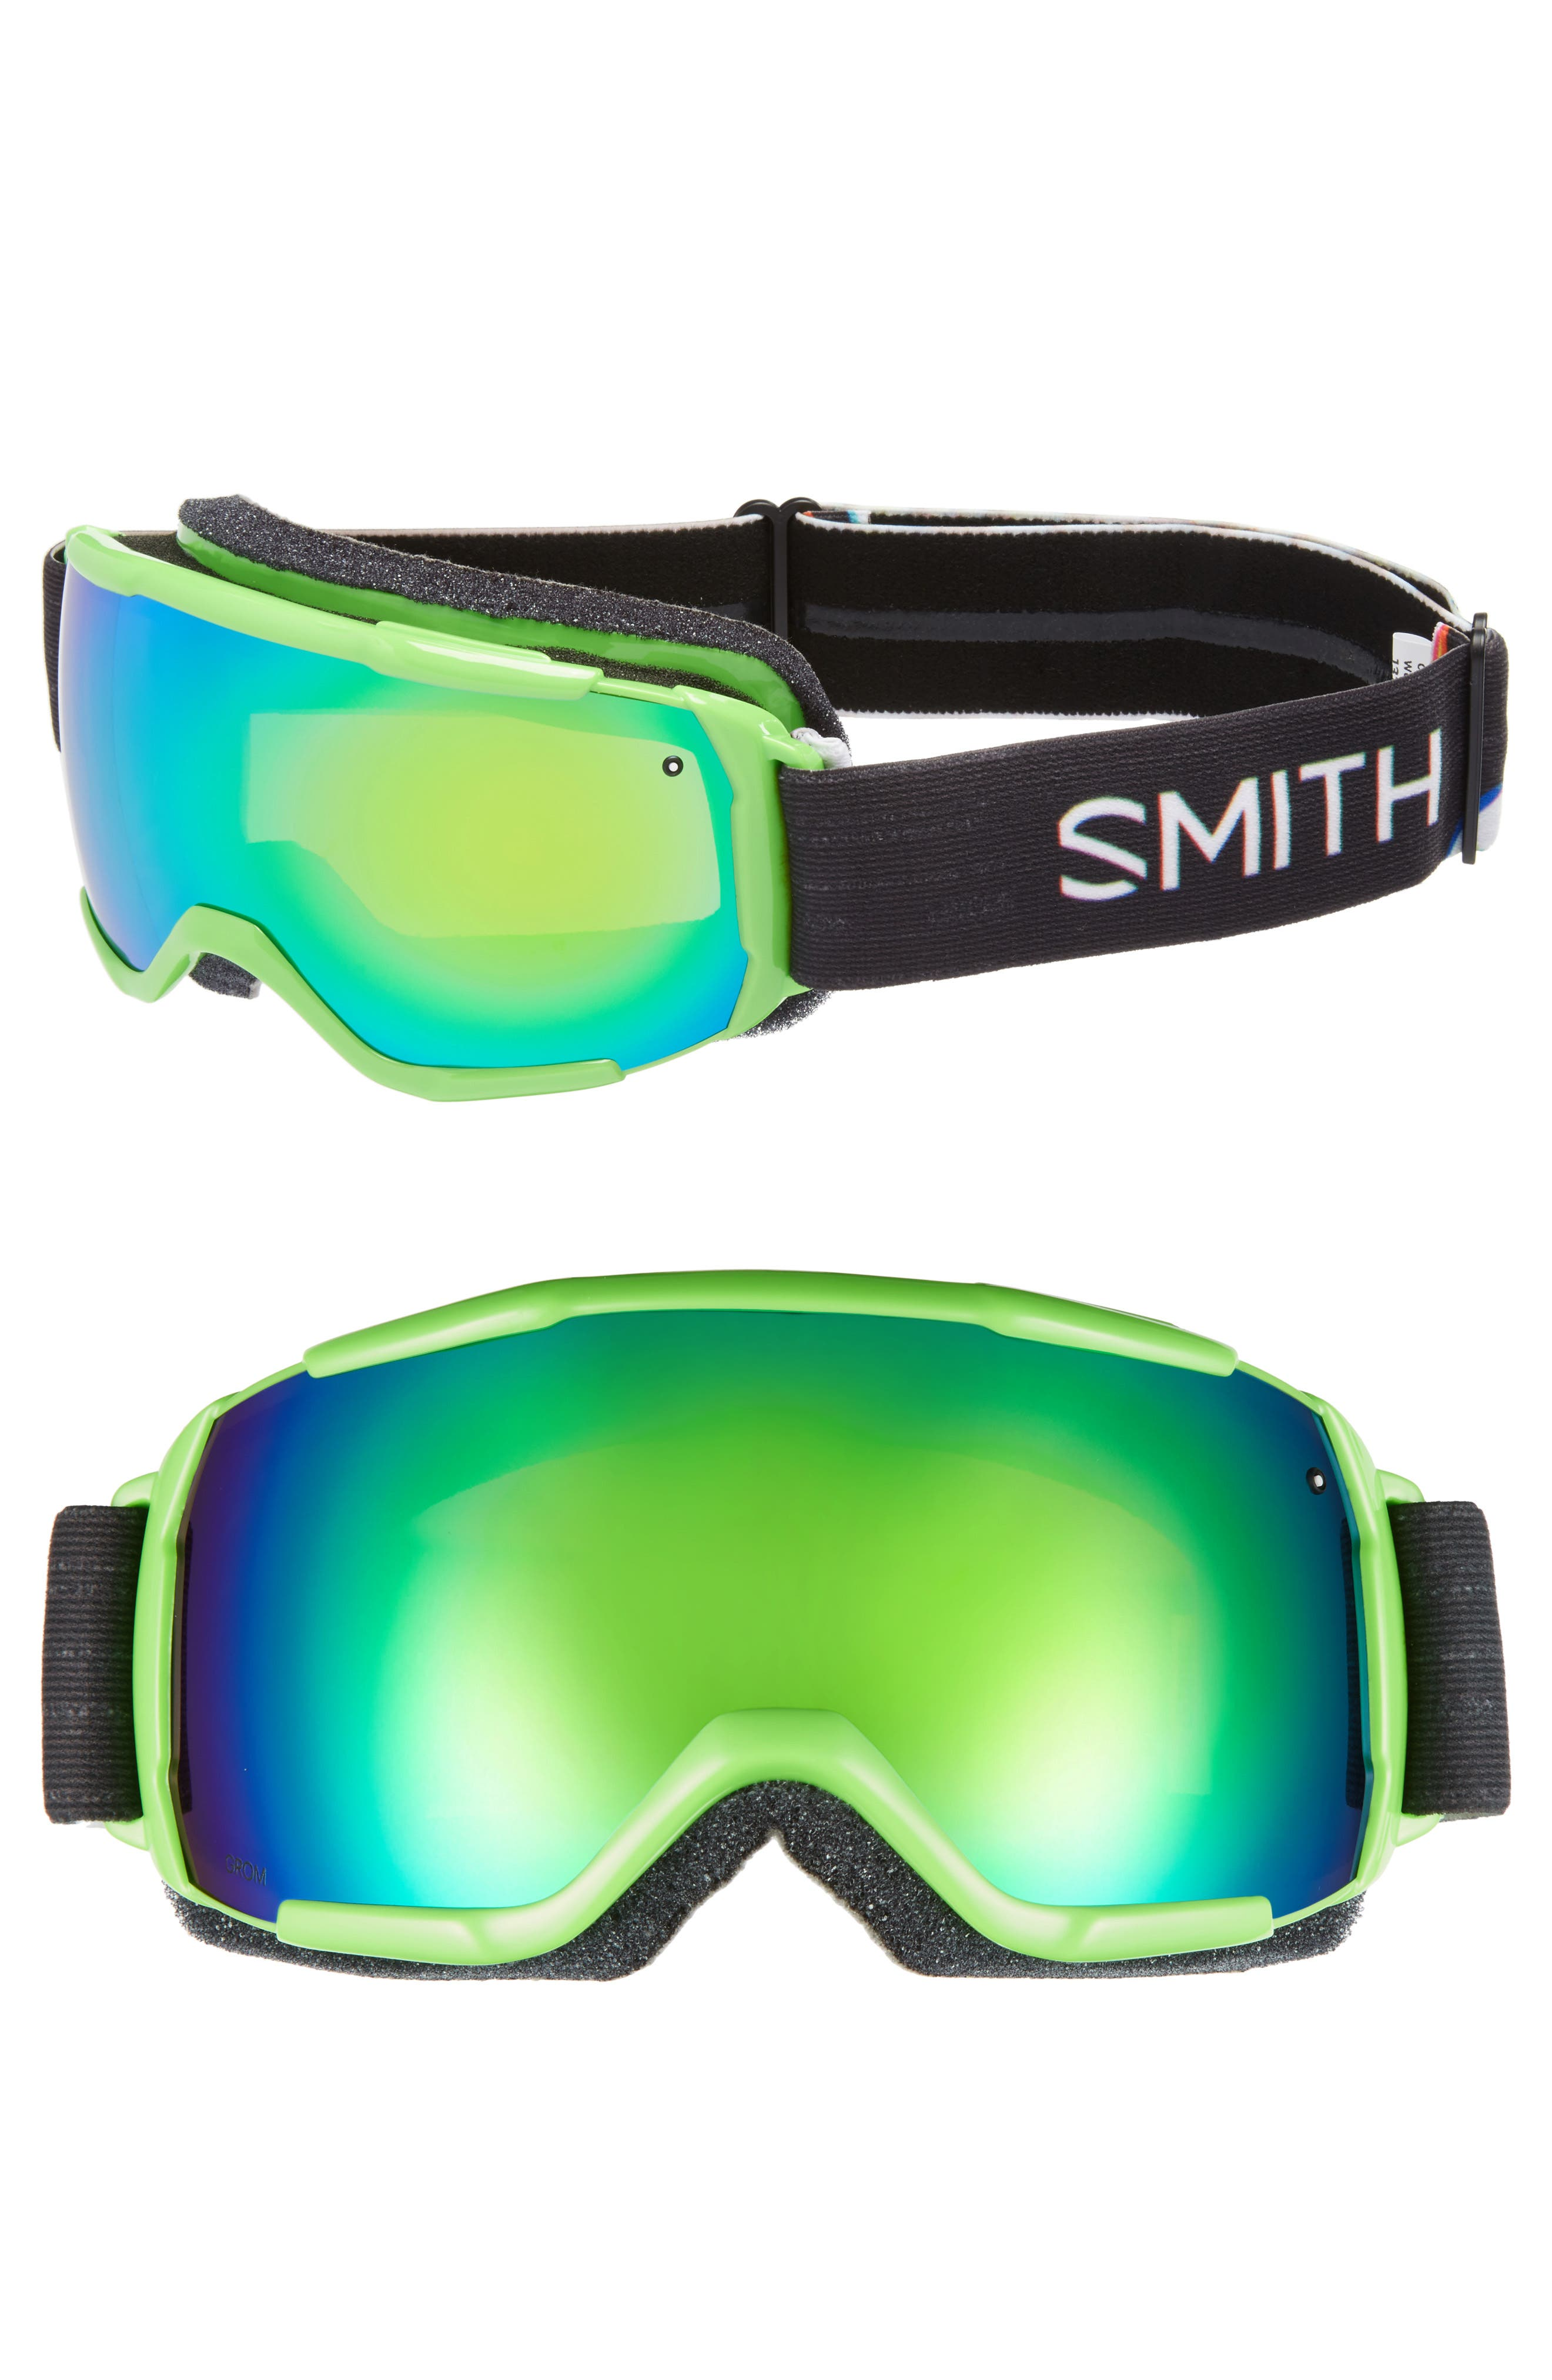 GROM SNOW GOGGLES - REACTOR TRACKING/ MIRROR